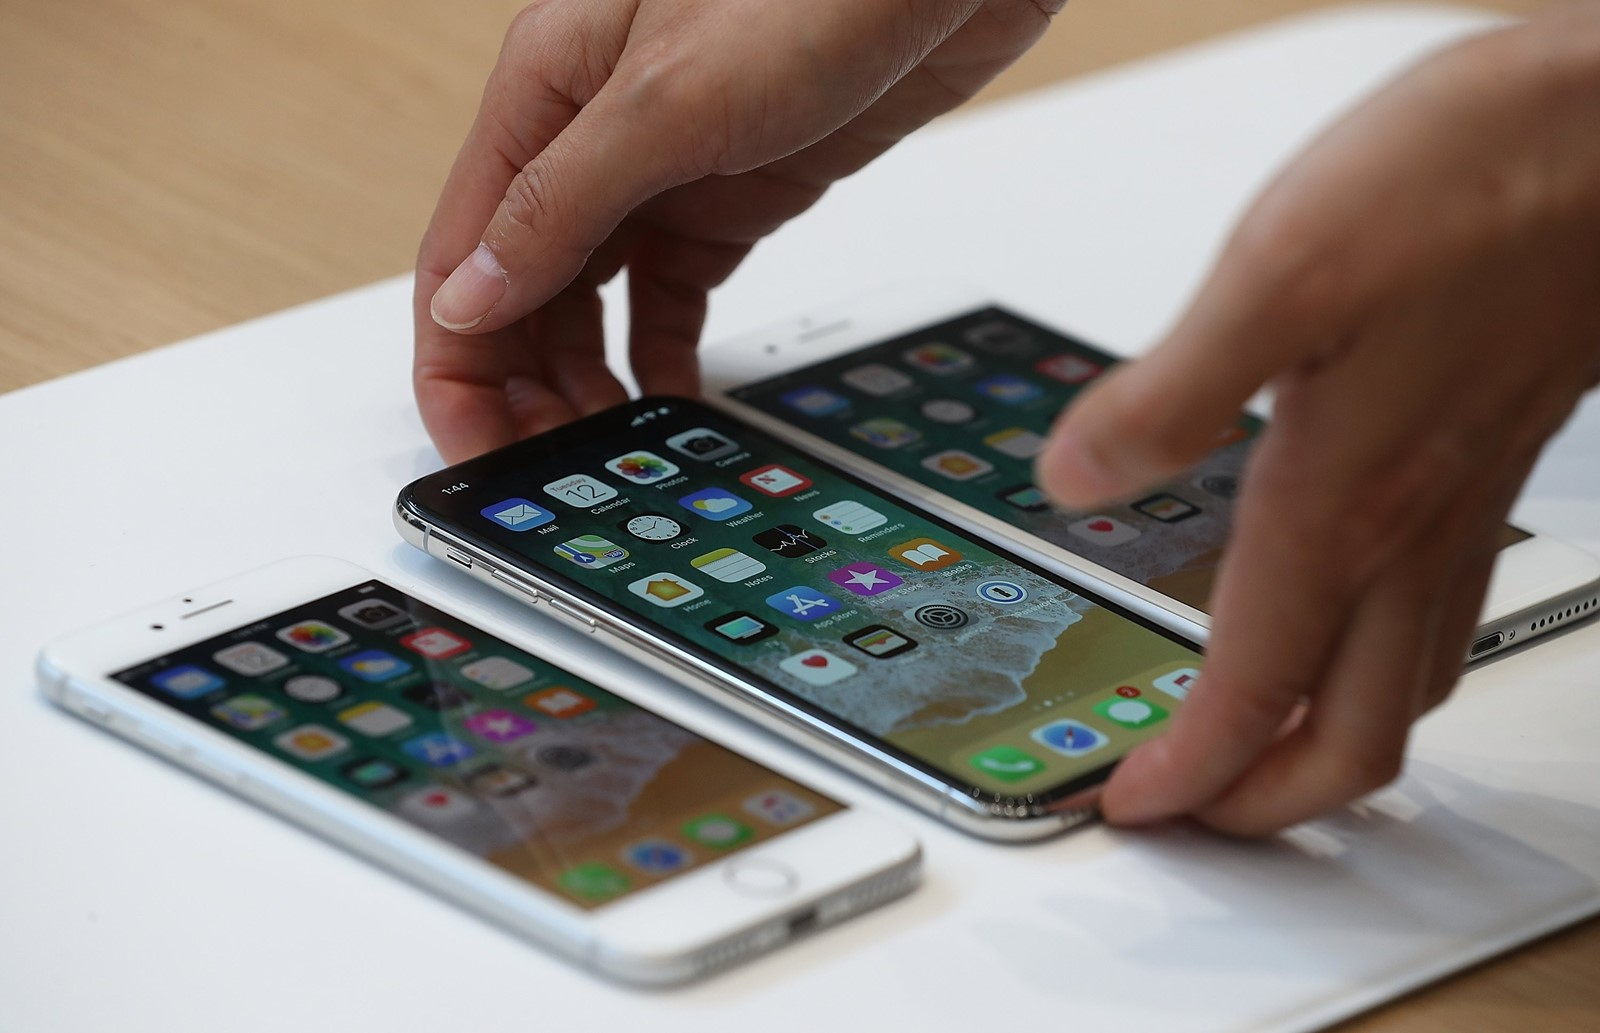 Credit freeze may hit iPhone fans - Northwest